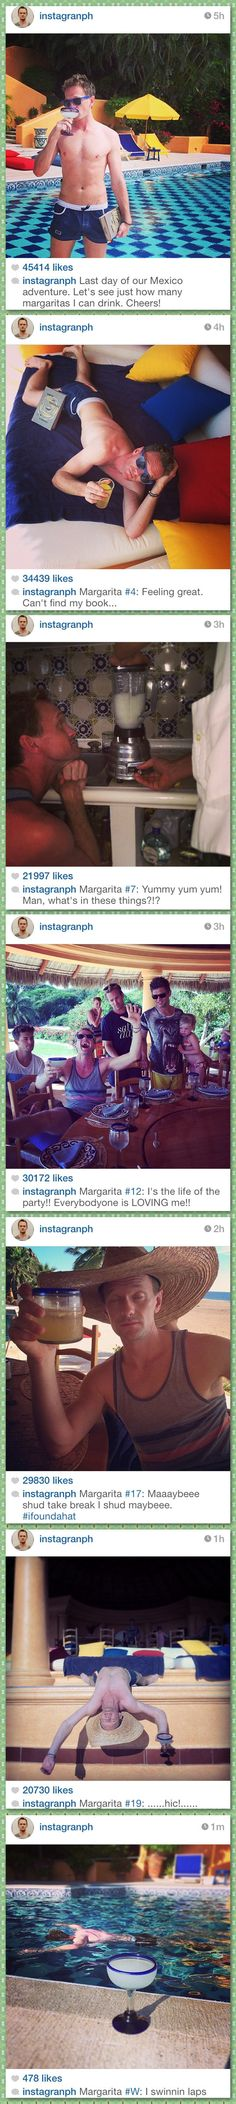 Neil Patrick Harris documents his last day of vacation in Mexico… So bad, yet so funny! I'd do that if I were in Mexico also!